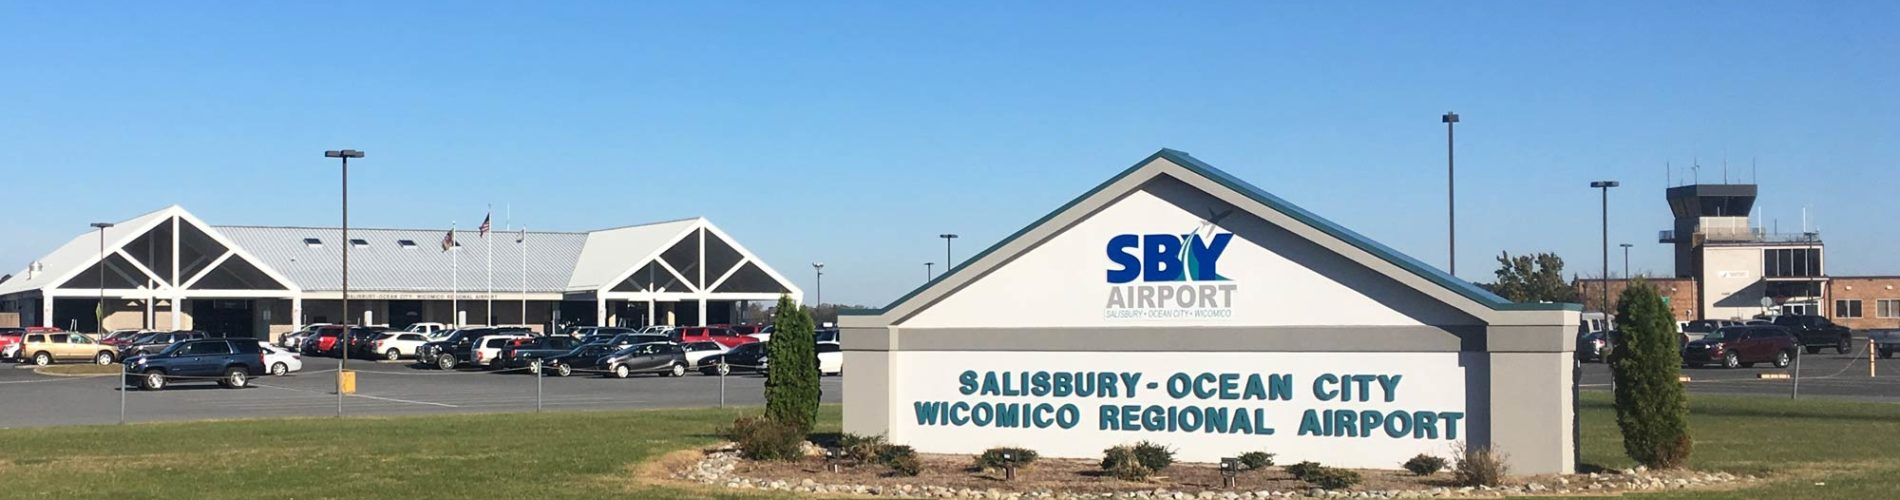 An image of the front of the Salisbury Regional Airport